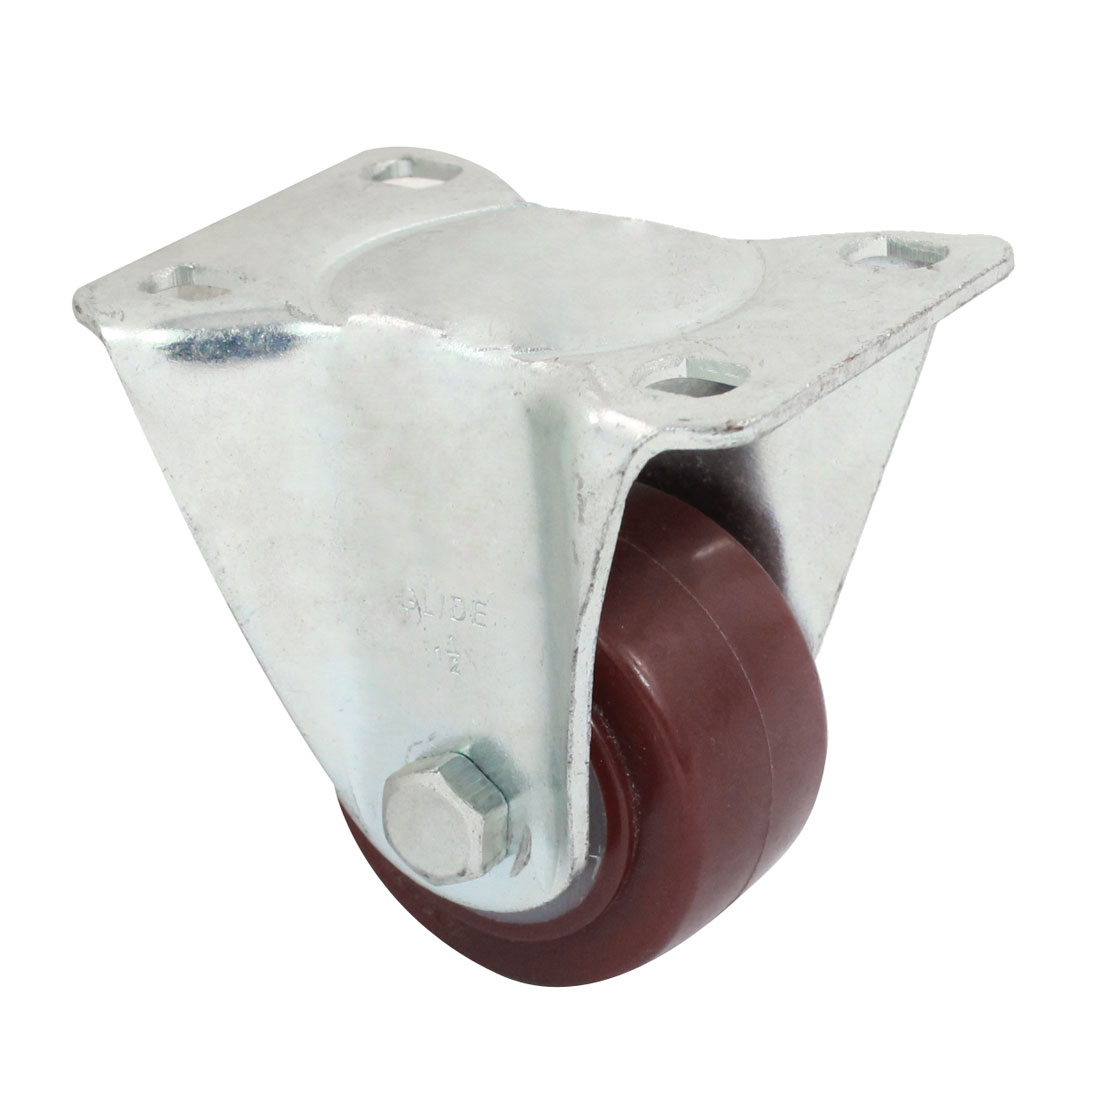 Market Shopping Trolley Top Plate Fixed Caster Wheel Burgundy Silver Tone